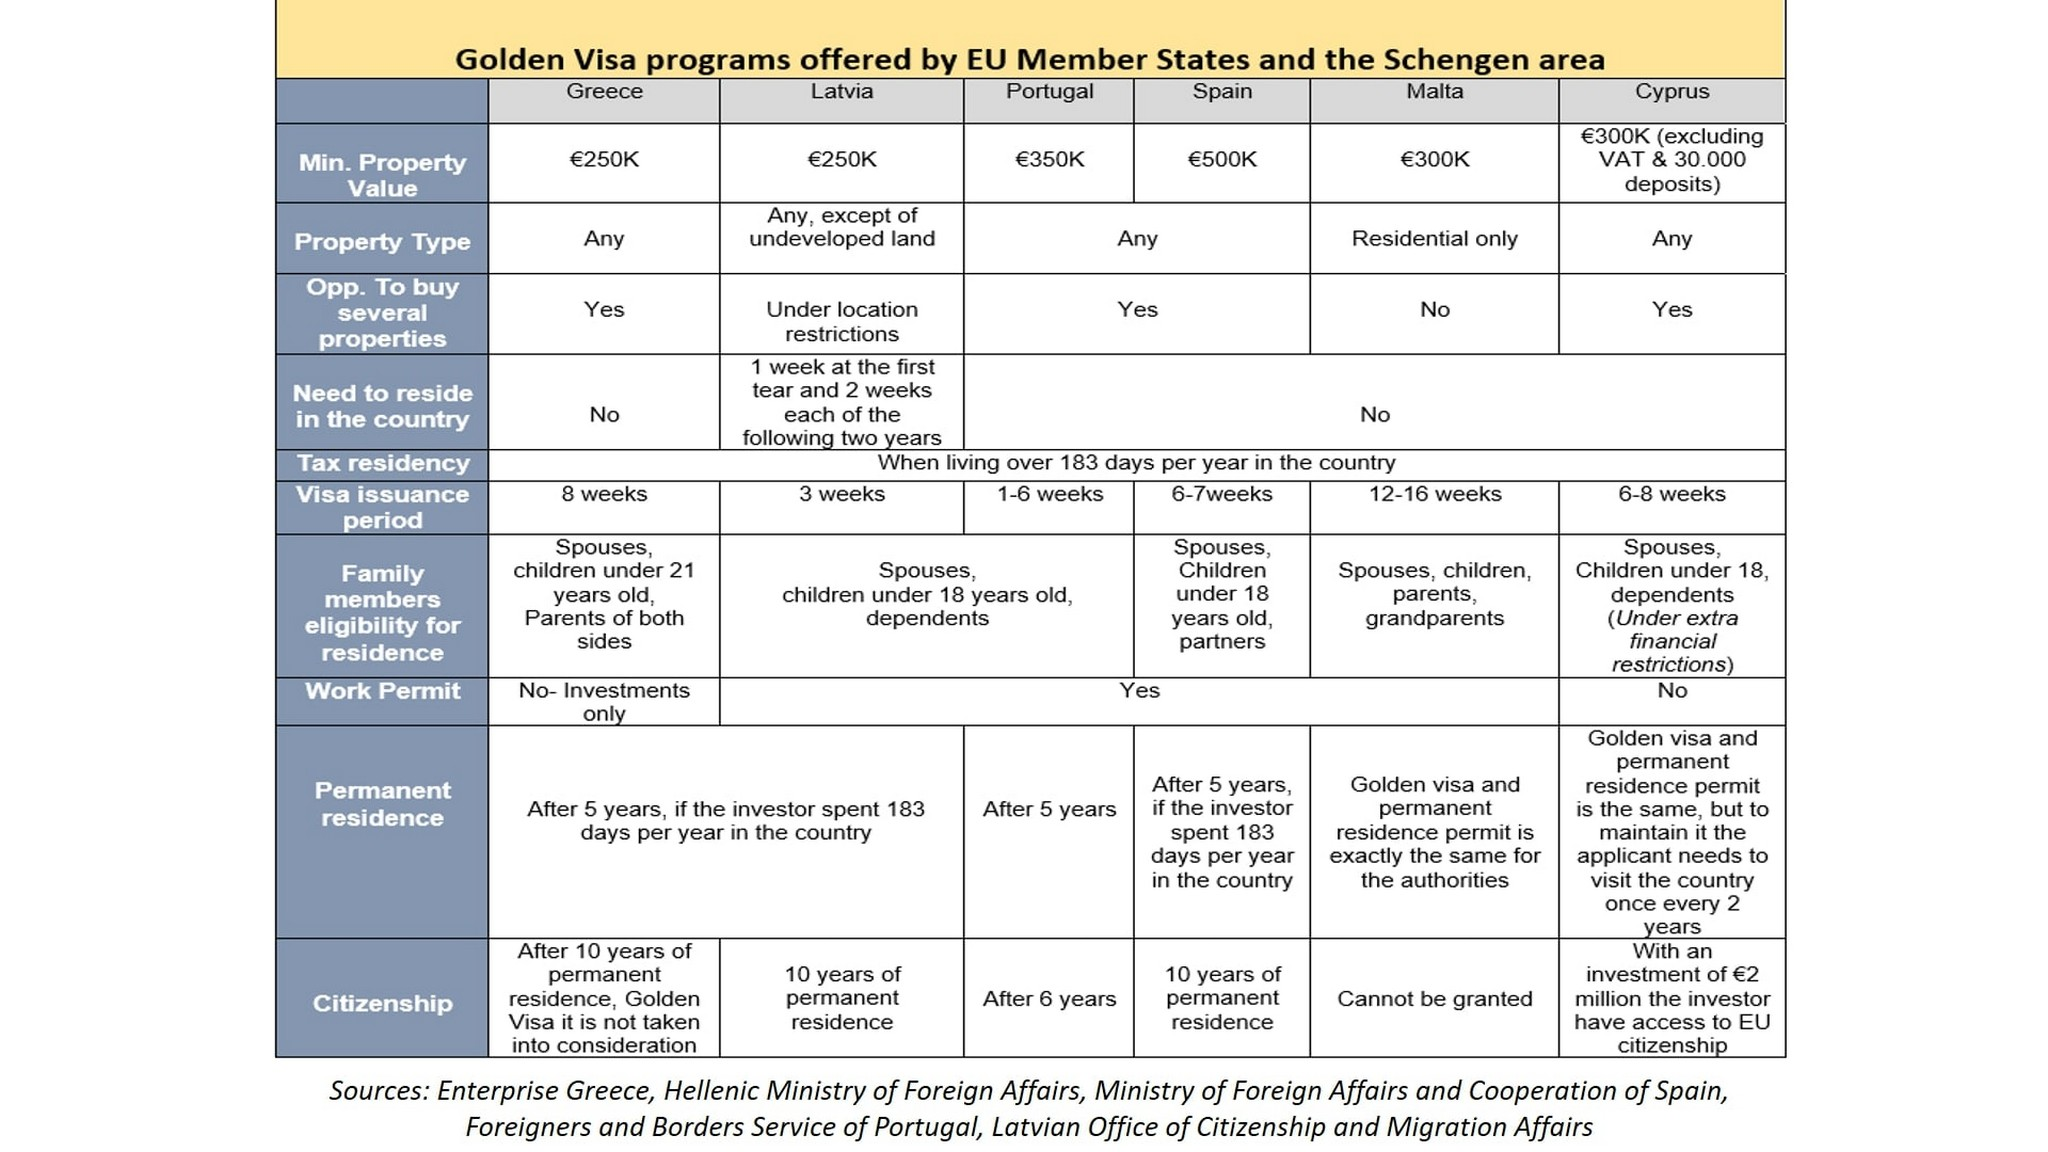 Comparative table of Golden Visa Programs by Divine Property